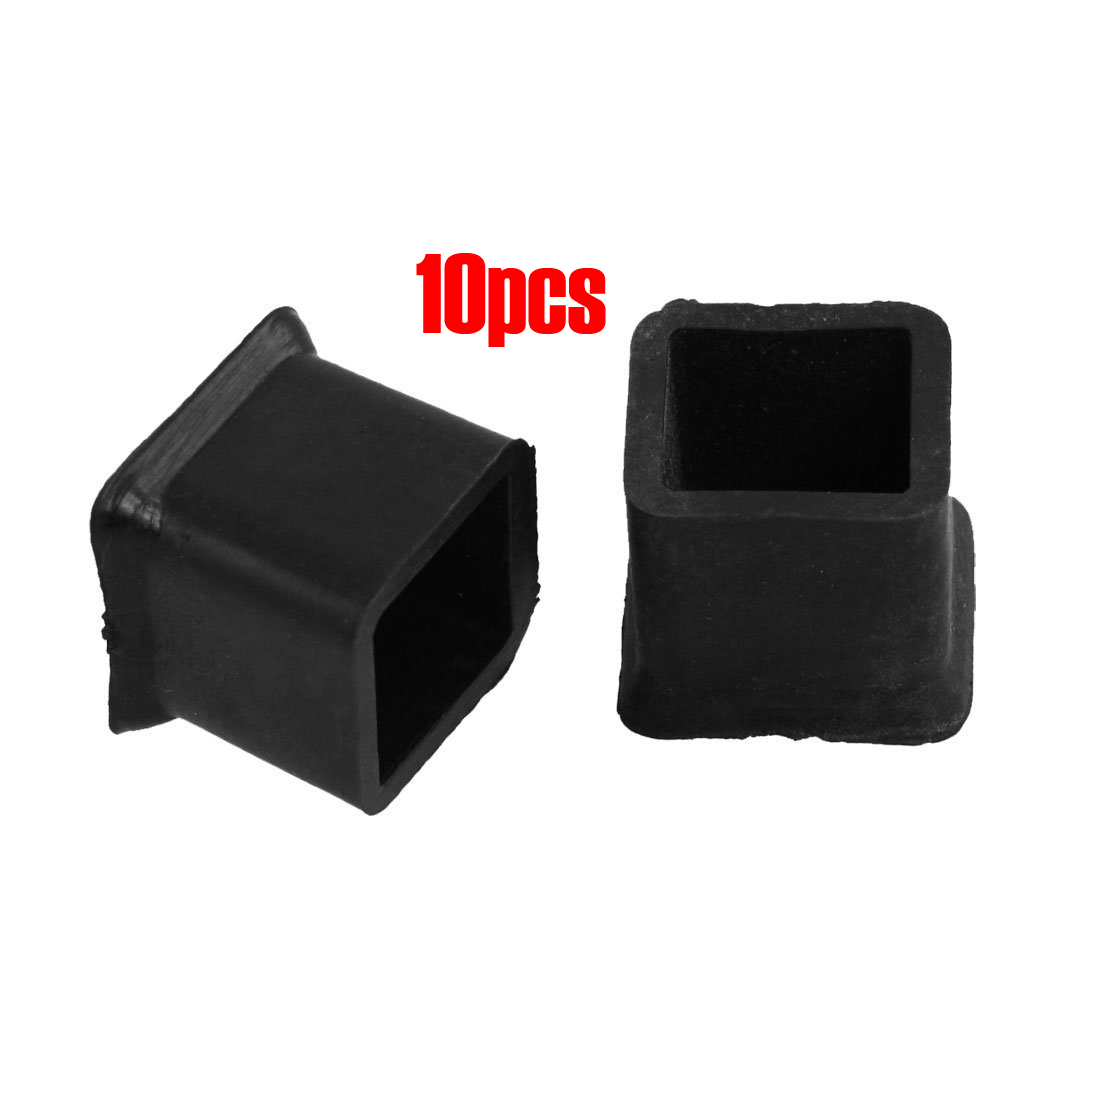 Botique New 10Pcs Furniture Chair Table Leg Rubber Foot Covers Protectors 20mm x 20mm